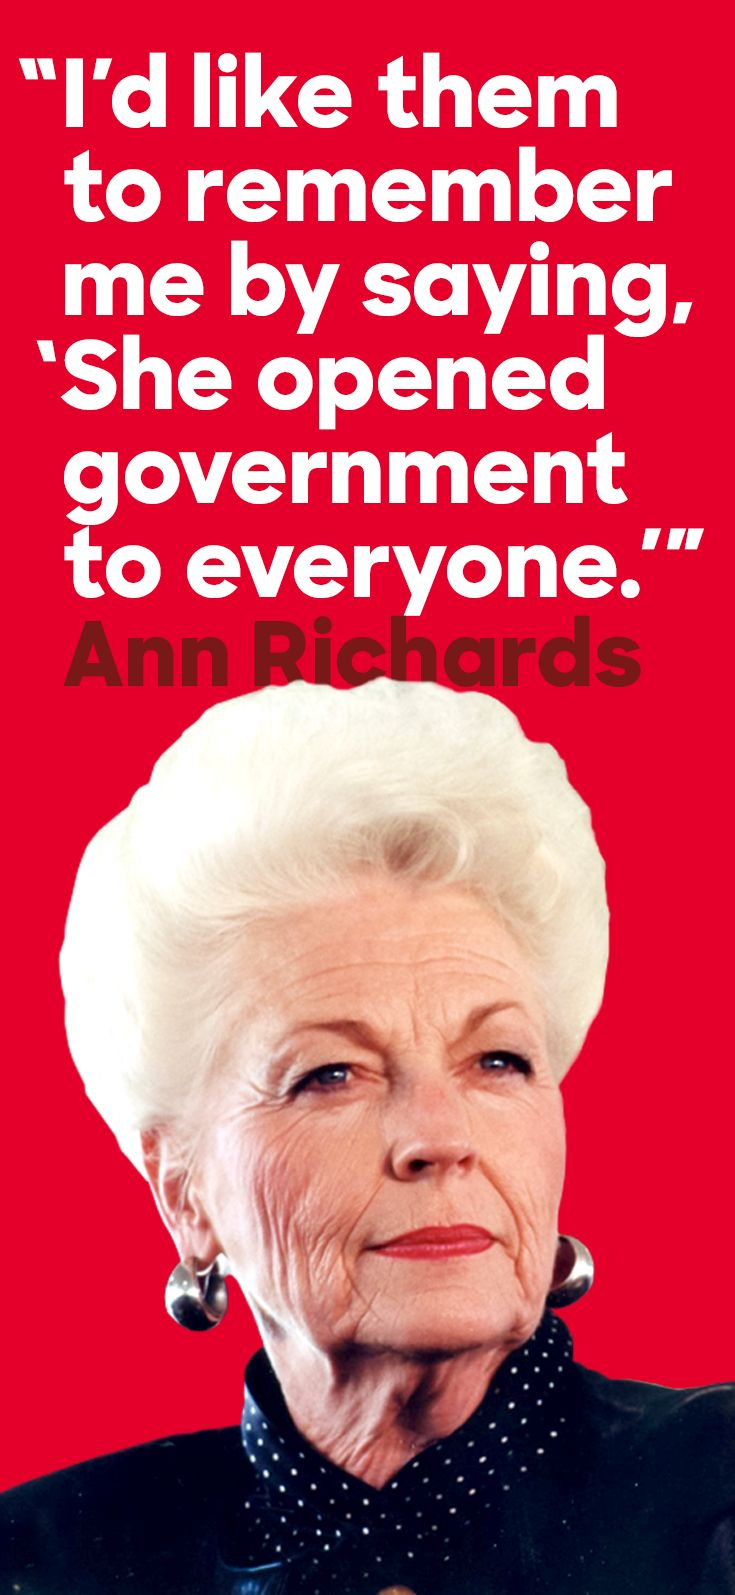 """Born September 1, 1933, Ann Richards was the first woman to be elected governor of Texas in her own right. Her leadership inspired a generation of women and marked a turning point for Democratic politics in the state—what she called the """"New Texas."""" Ann's fight to open doors for women and people of color led to a watershed moment for equal rights in Texas and beyond. Thank you, Ann."""